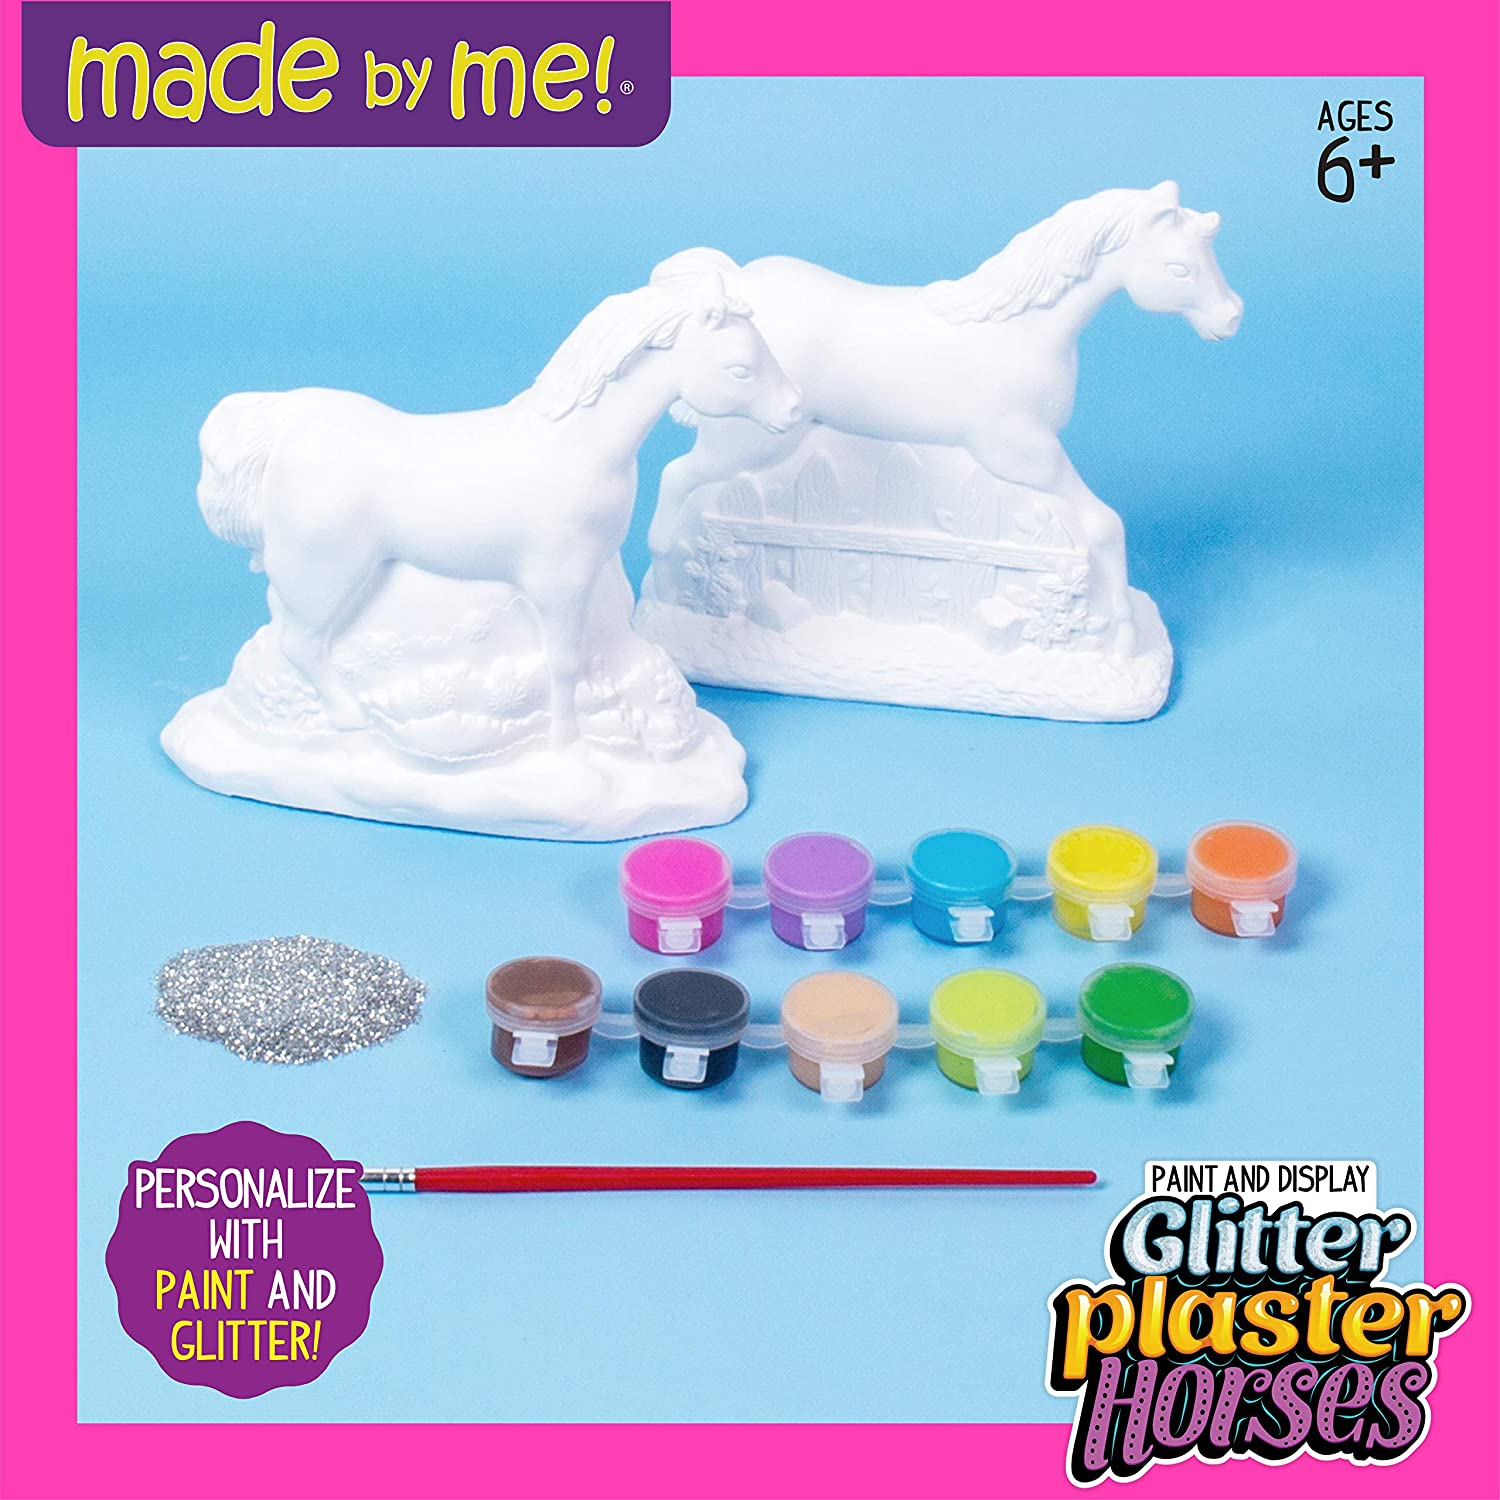 PlasterCraft Supplies,Youth Chalkware Camp Projects DIY Plasters ChalkWare Ready To Paint Carousel Horse Plaster Craft Summer Activity